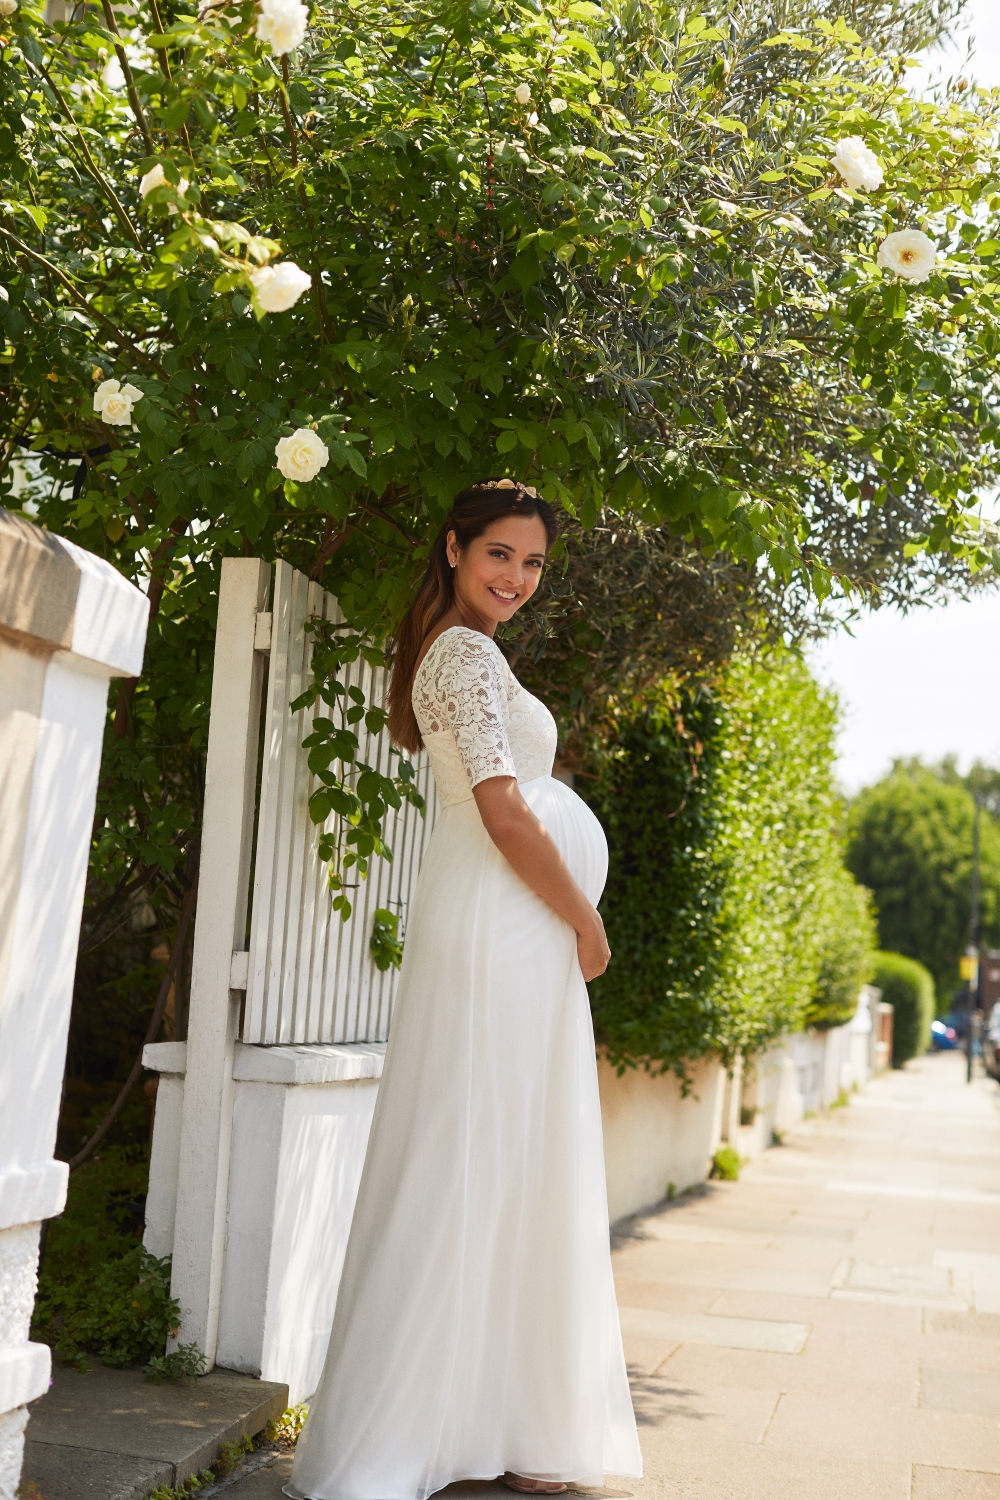 Maternity Wedding Dresses: The Best Dresses for Pregnant Brides